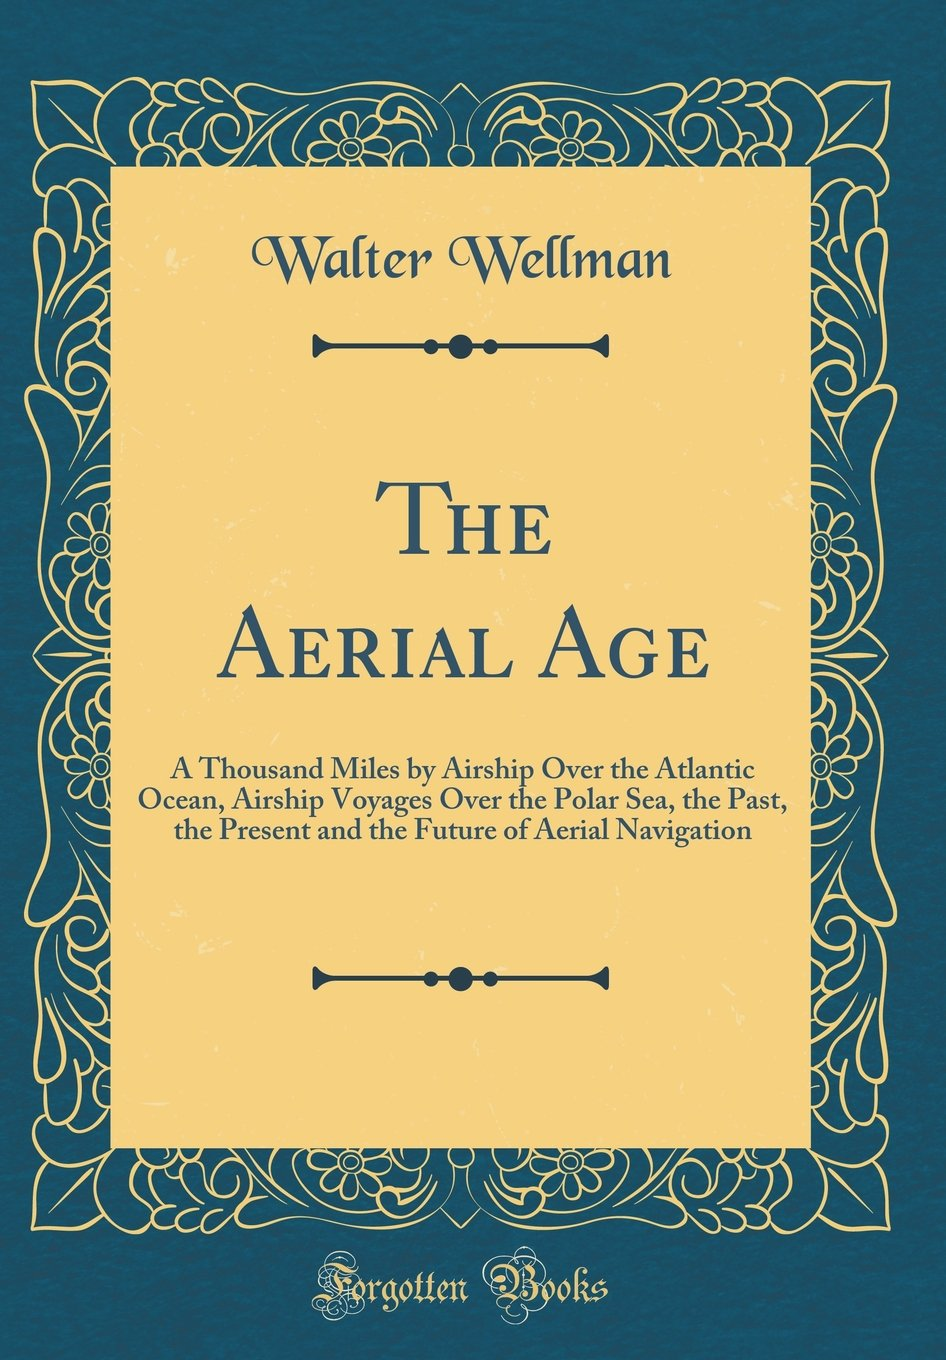 Download The Aerial Age: A Thousand Miles by Airship Over the Atlantic Ocean, Airship Voyages Over the Polar Sea, the Past, the Present and the Future of Aerial Navigation (Classic Reprint) PDF